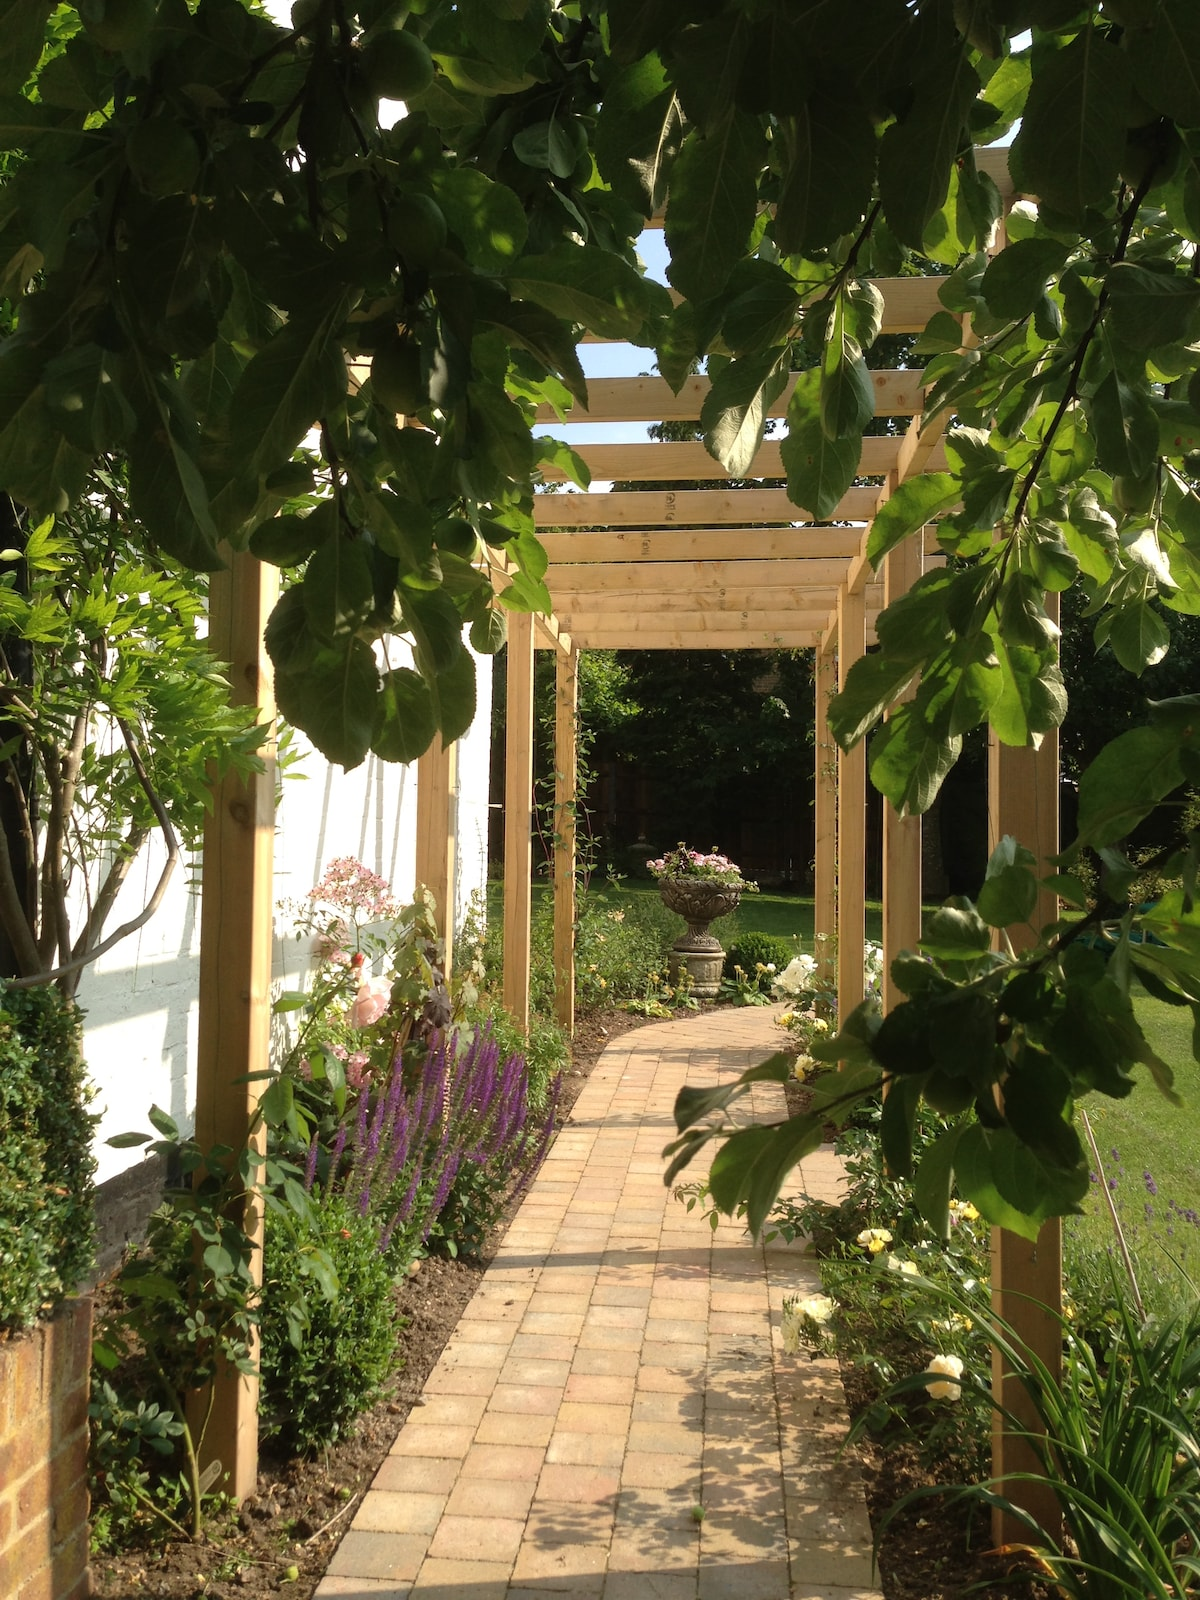 The apple tree and the pergola.